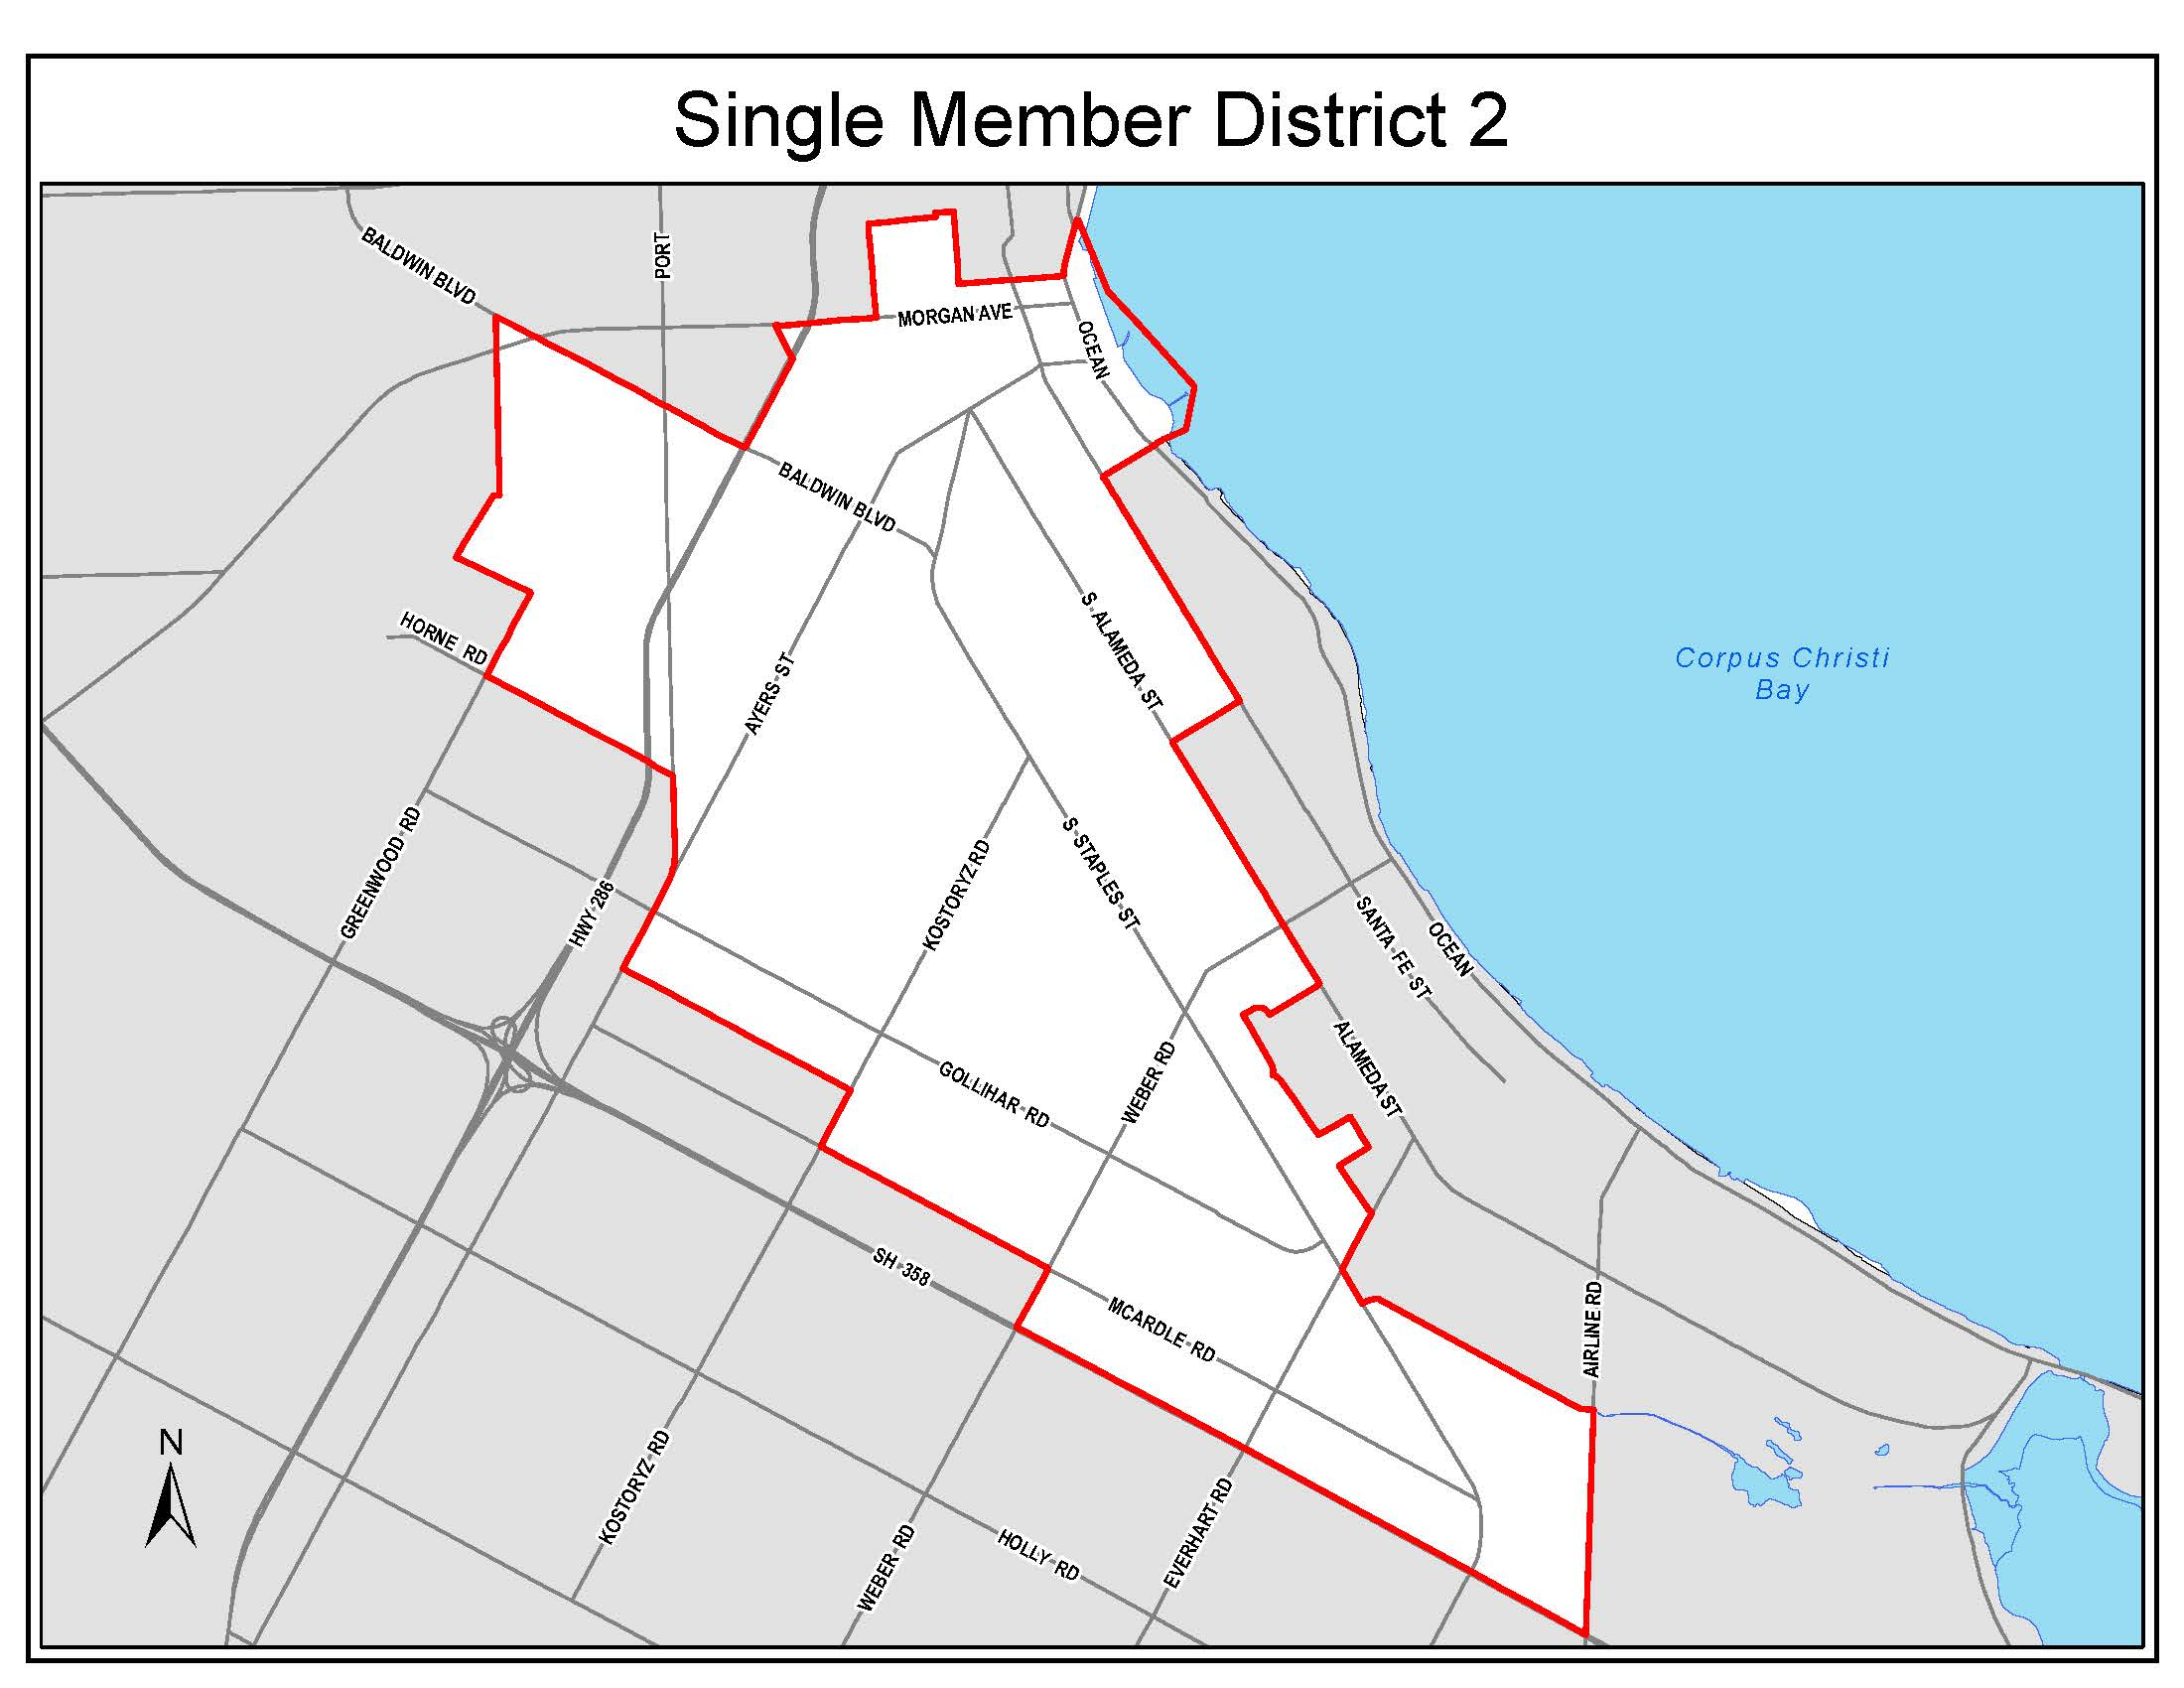 Select Projects in Council District 2 boundaries